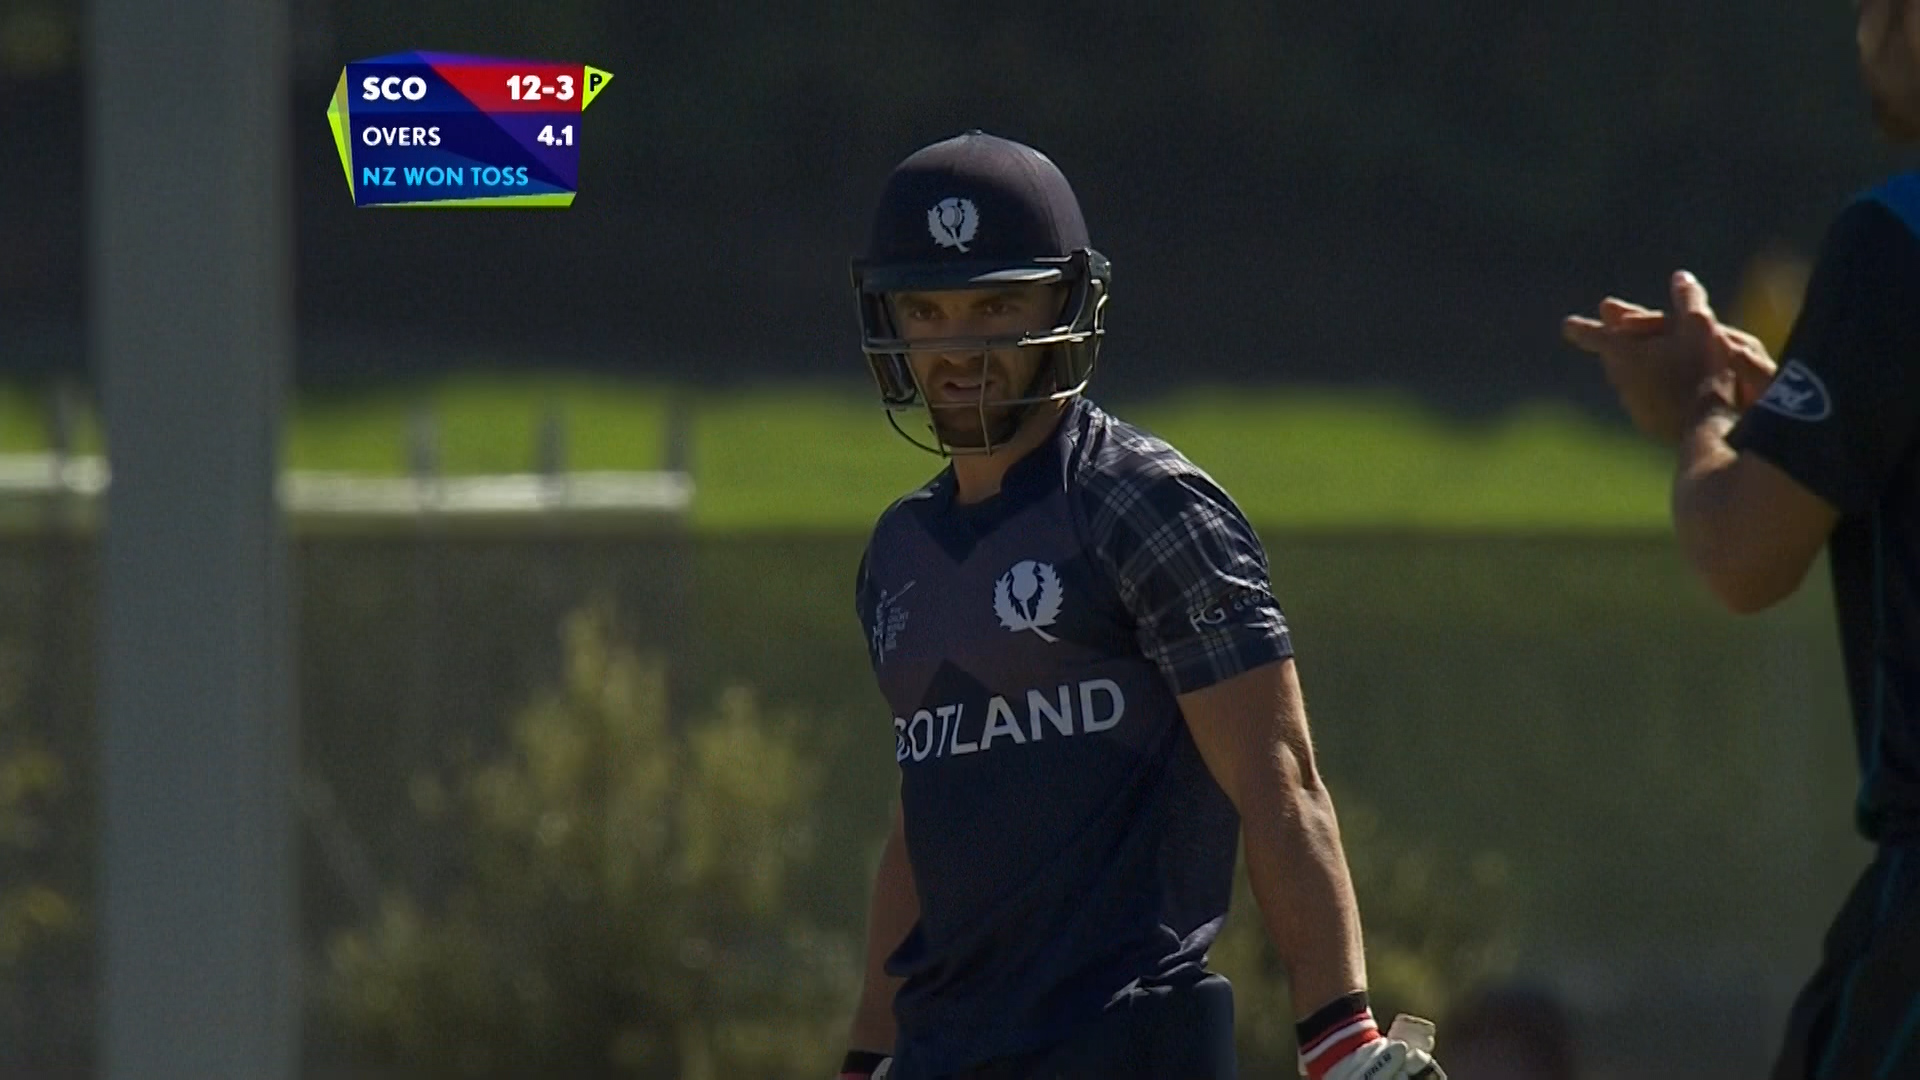 Preston Mommsen wicket – NZ vs SCO